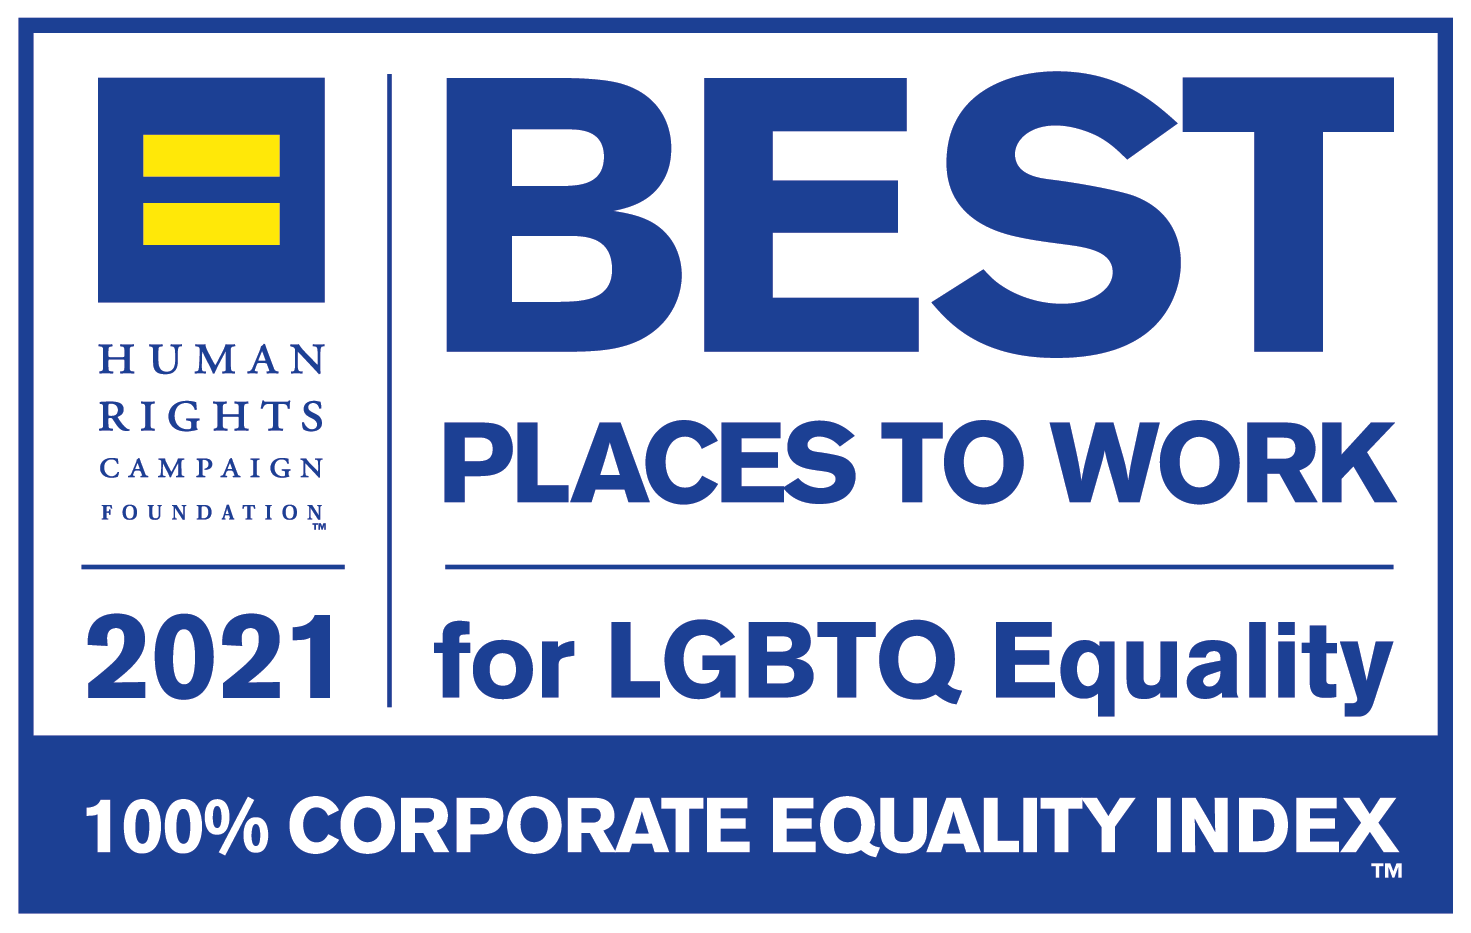 2021 Best Place to Work for LGBTQ Equality